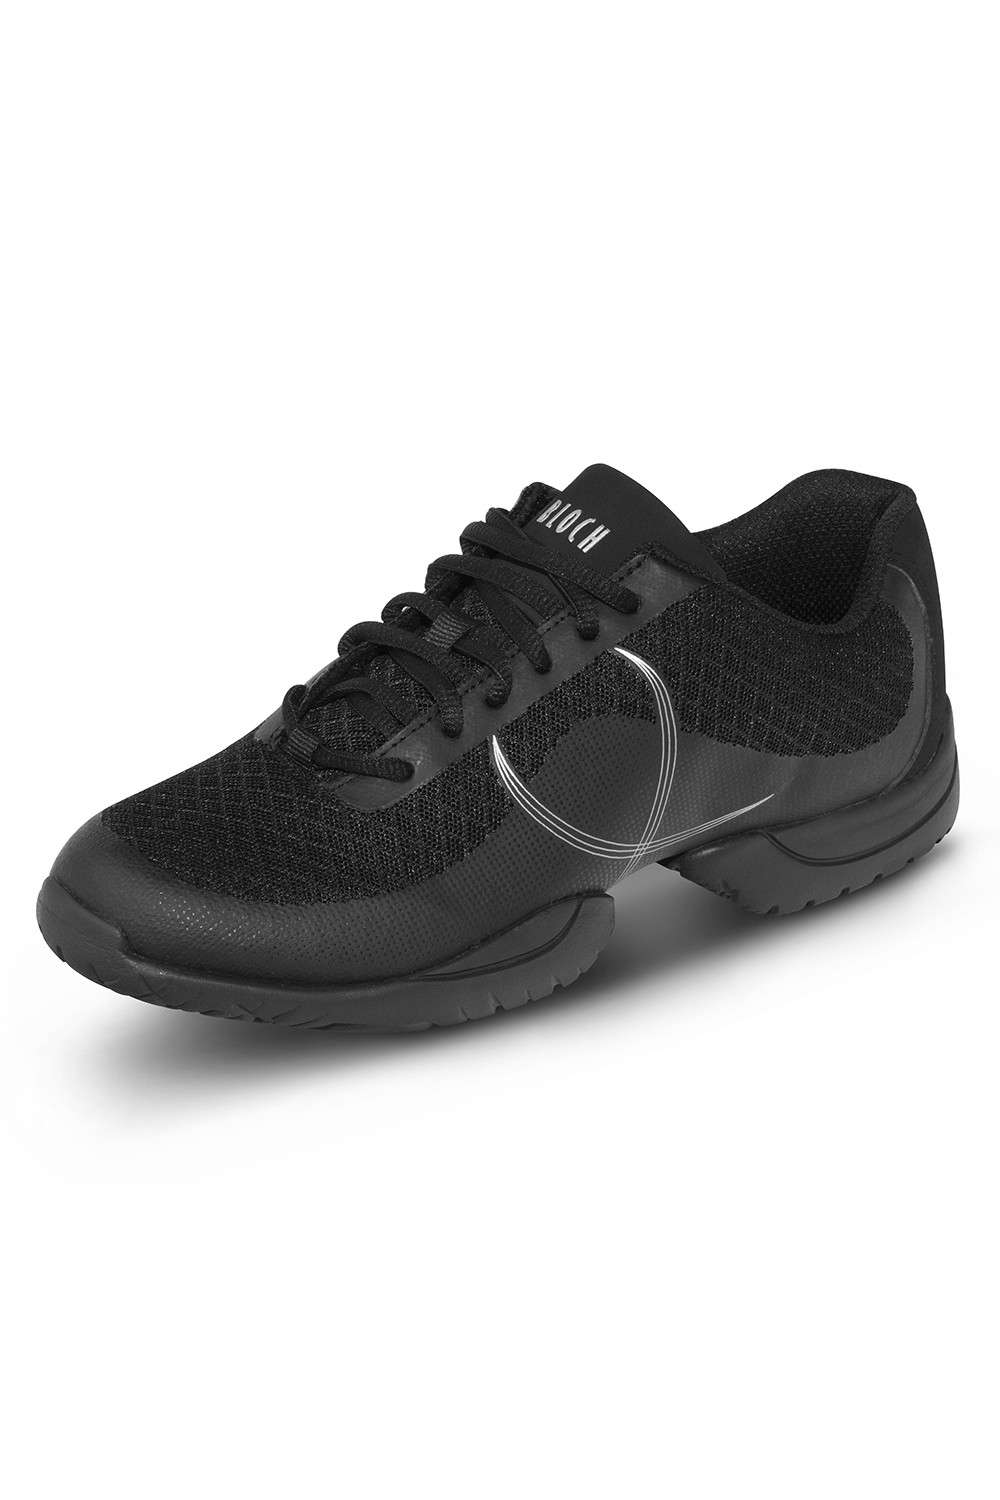 Troupe - Mens Men's Dance Sneakers